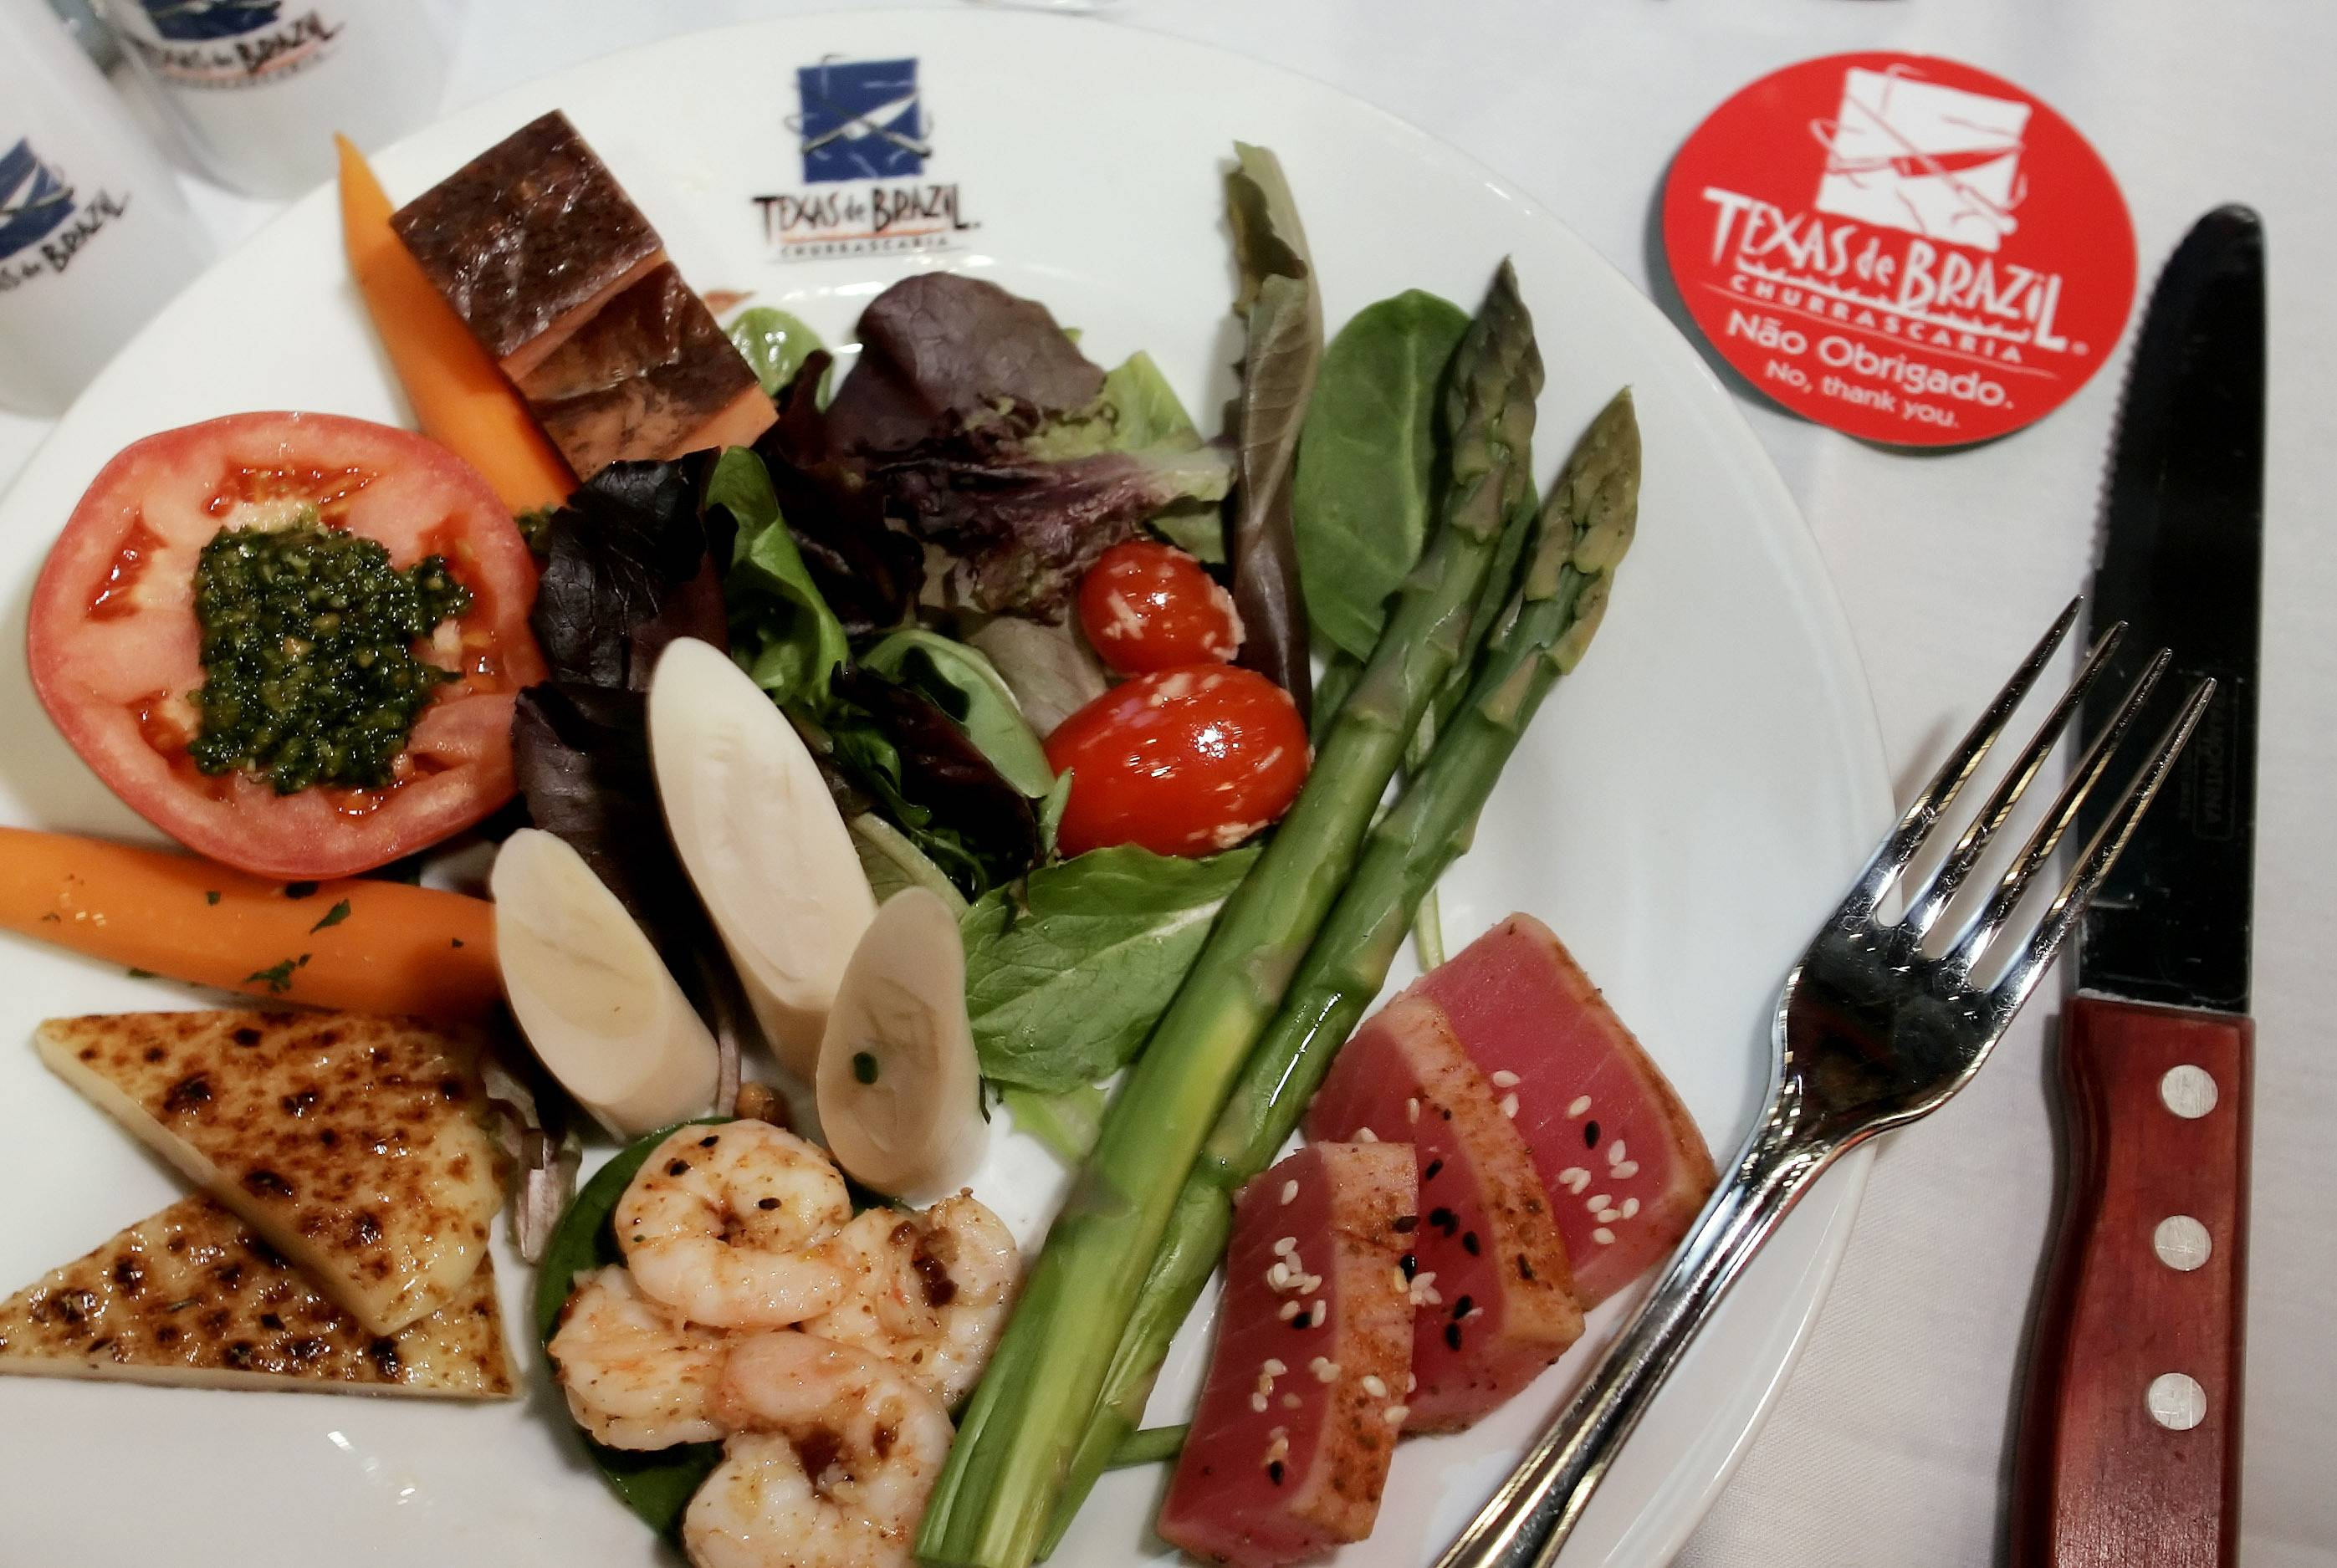 Selections from the immense salad bar at the Texas de Brazil at Woodfield Mall are included on the restaurant's specially priced Restaurant Week menu.